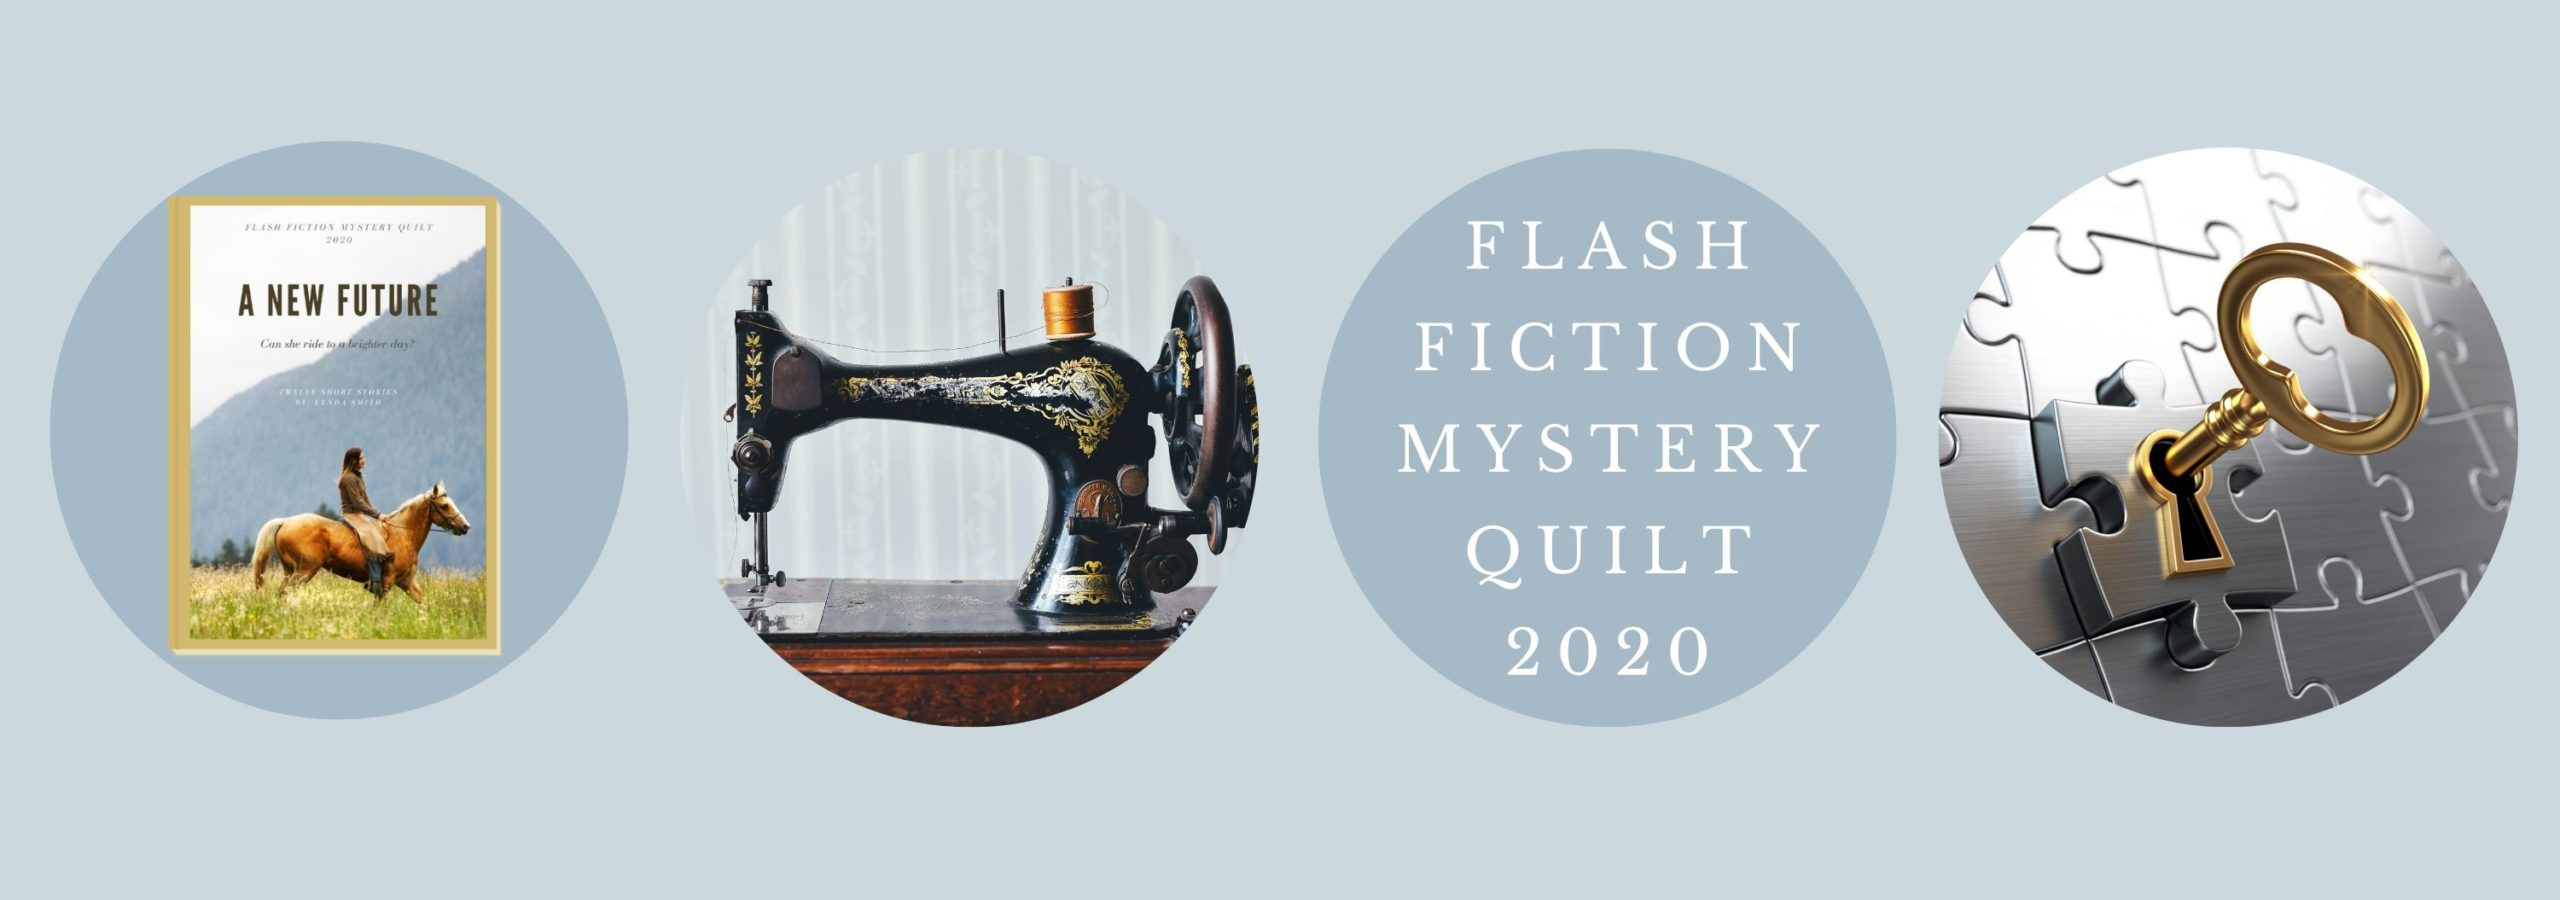 Flash Fiction Mystery Quilt 2020 Header JPG